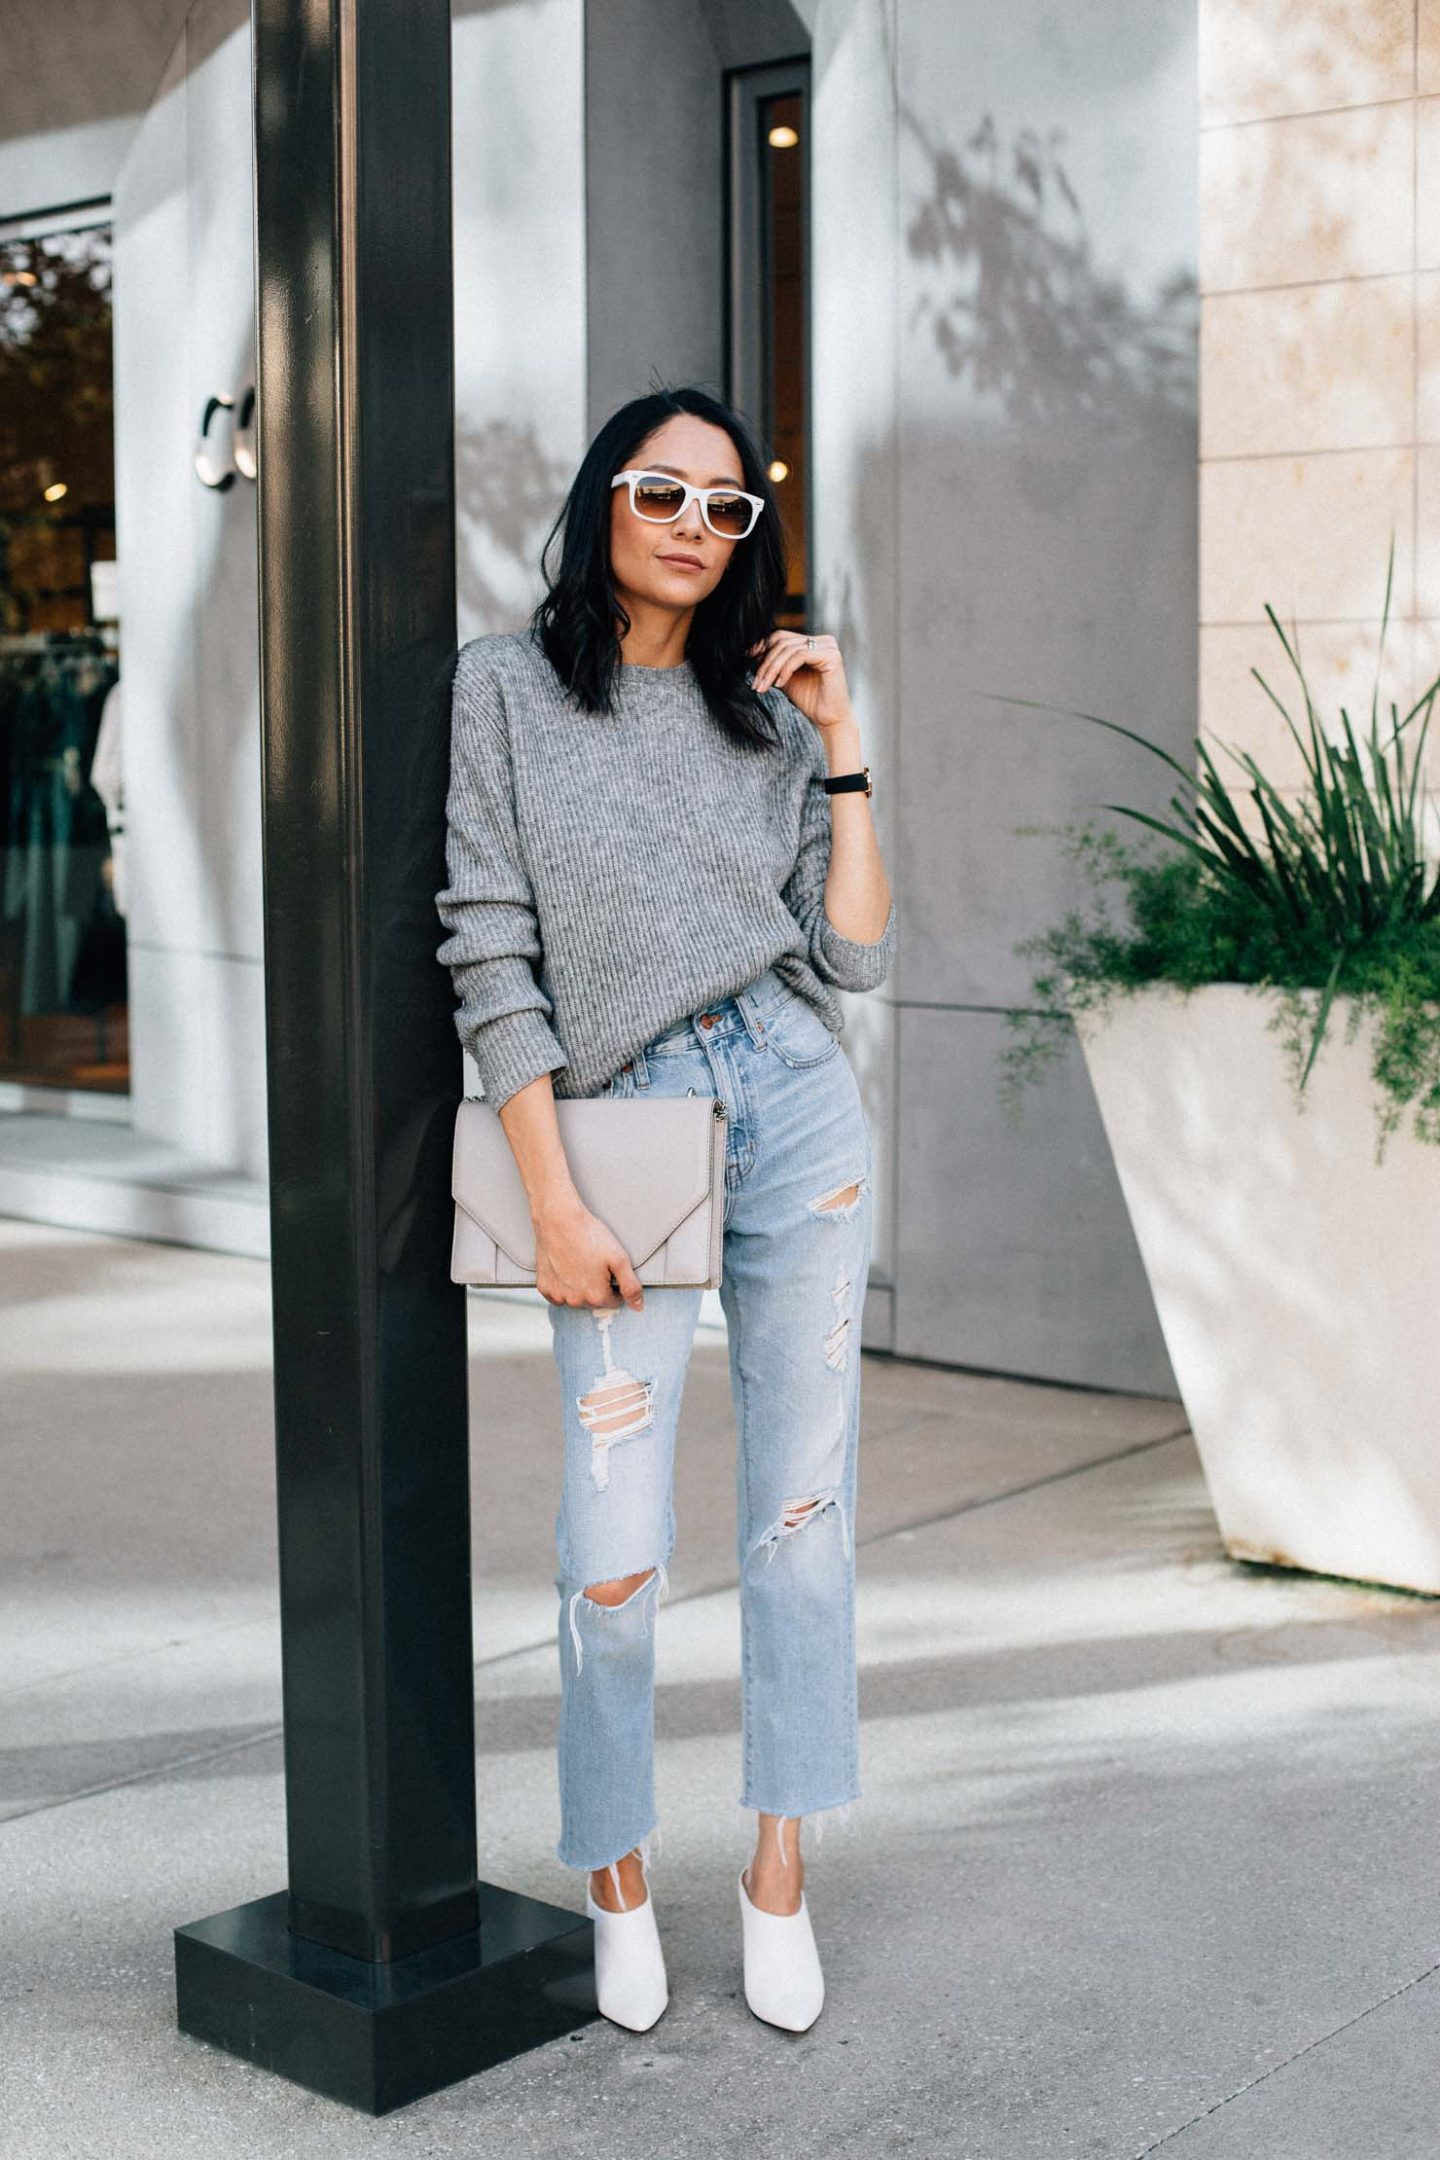 ab3f920e9a Casual Fall Outfit  Oversized Sweater and Vintage Denim